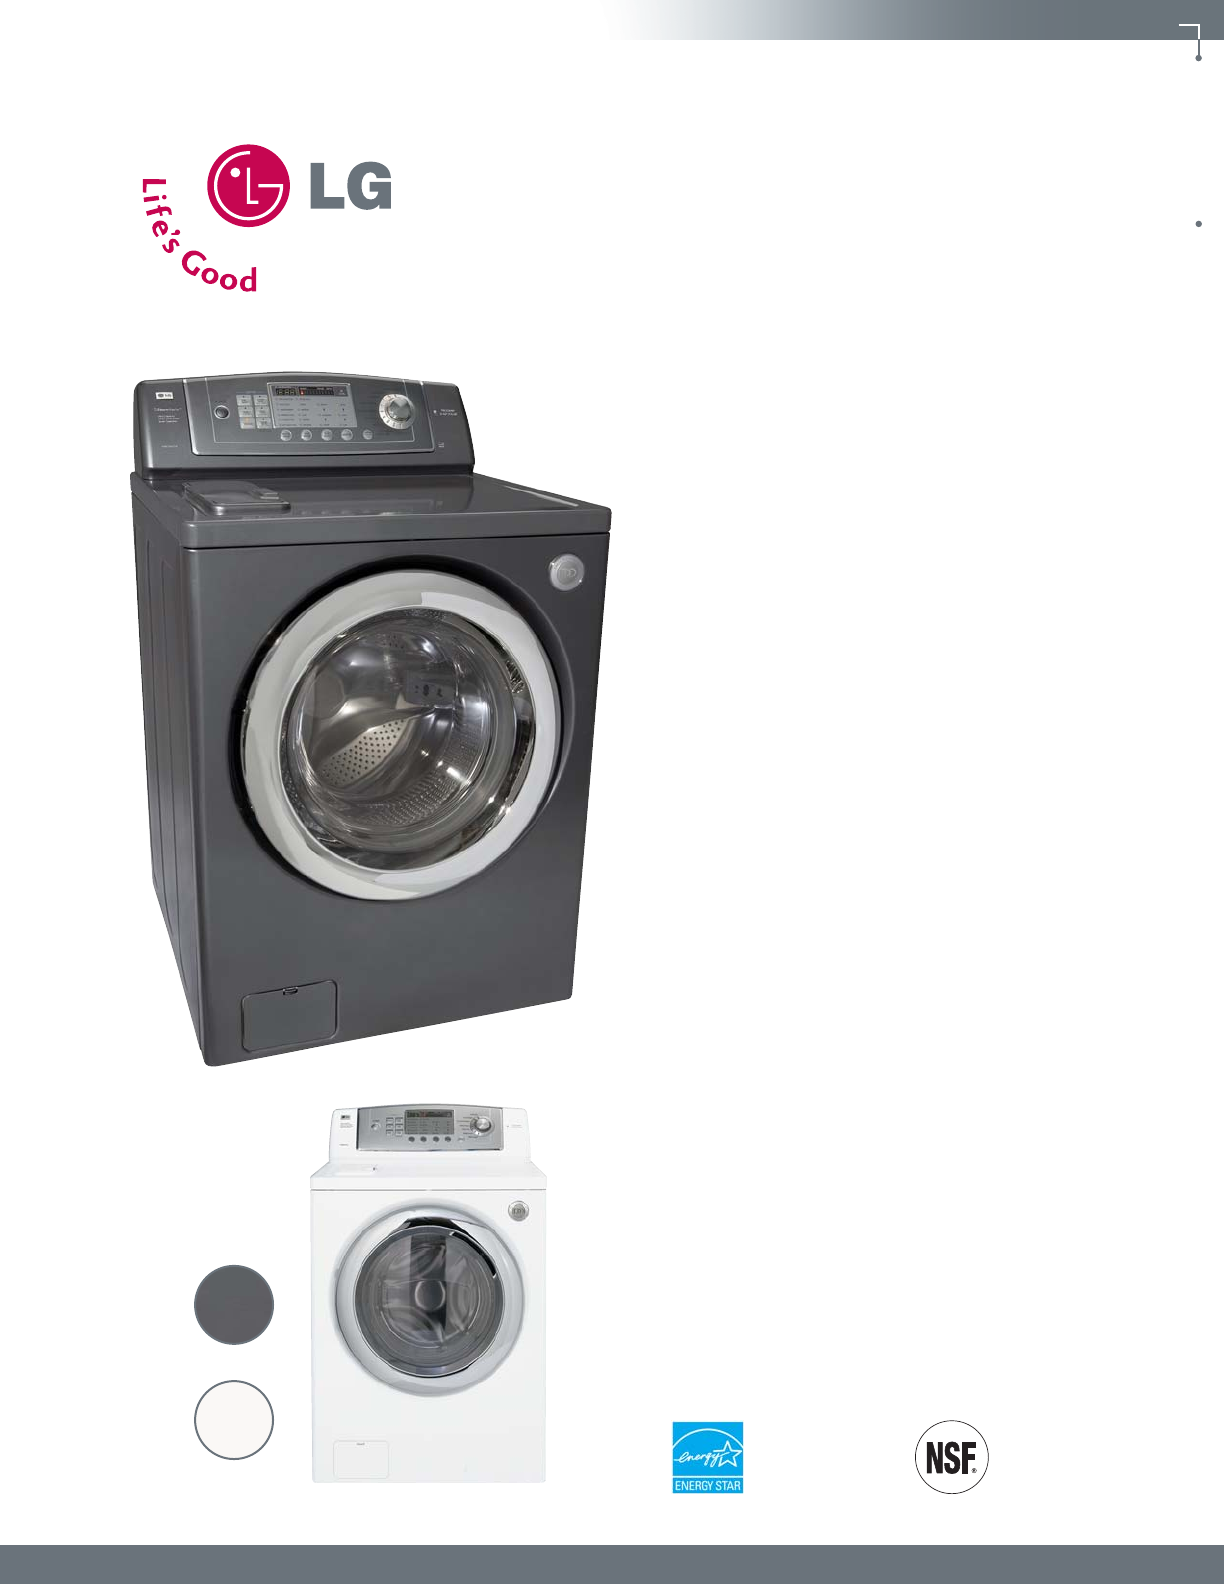 lg electronics washer wm0742hga user guide manualsonline com rh office manualsonline com LG Television Manual LG Television Manual